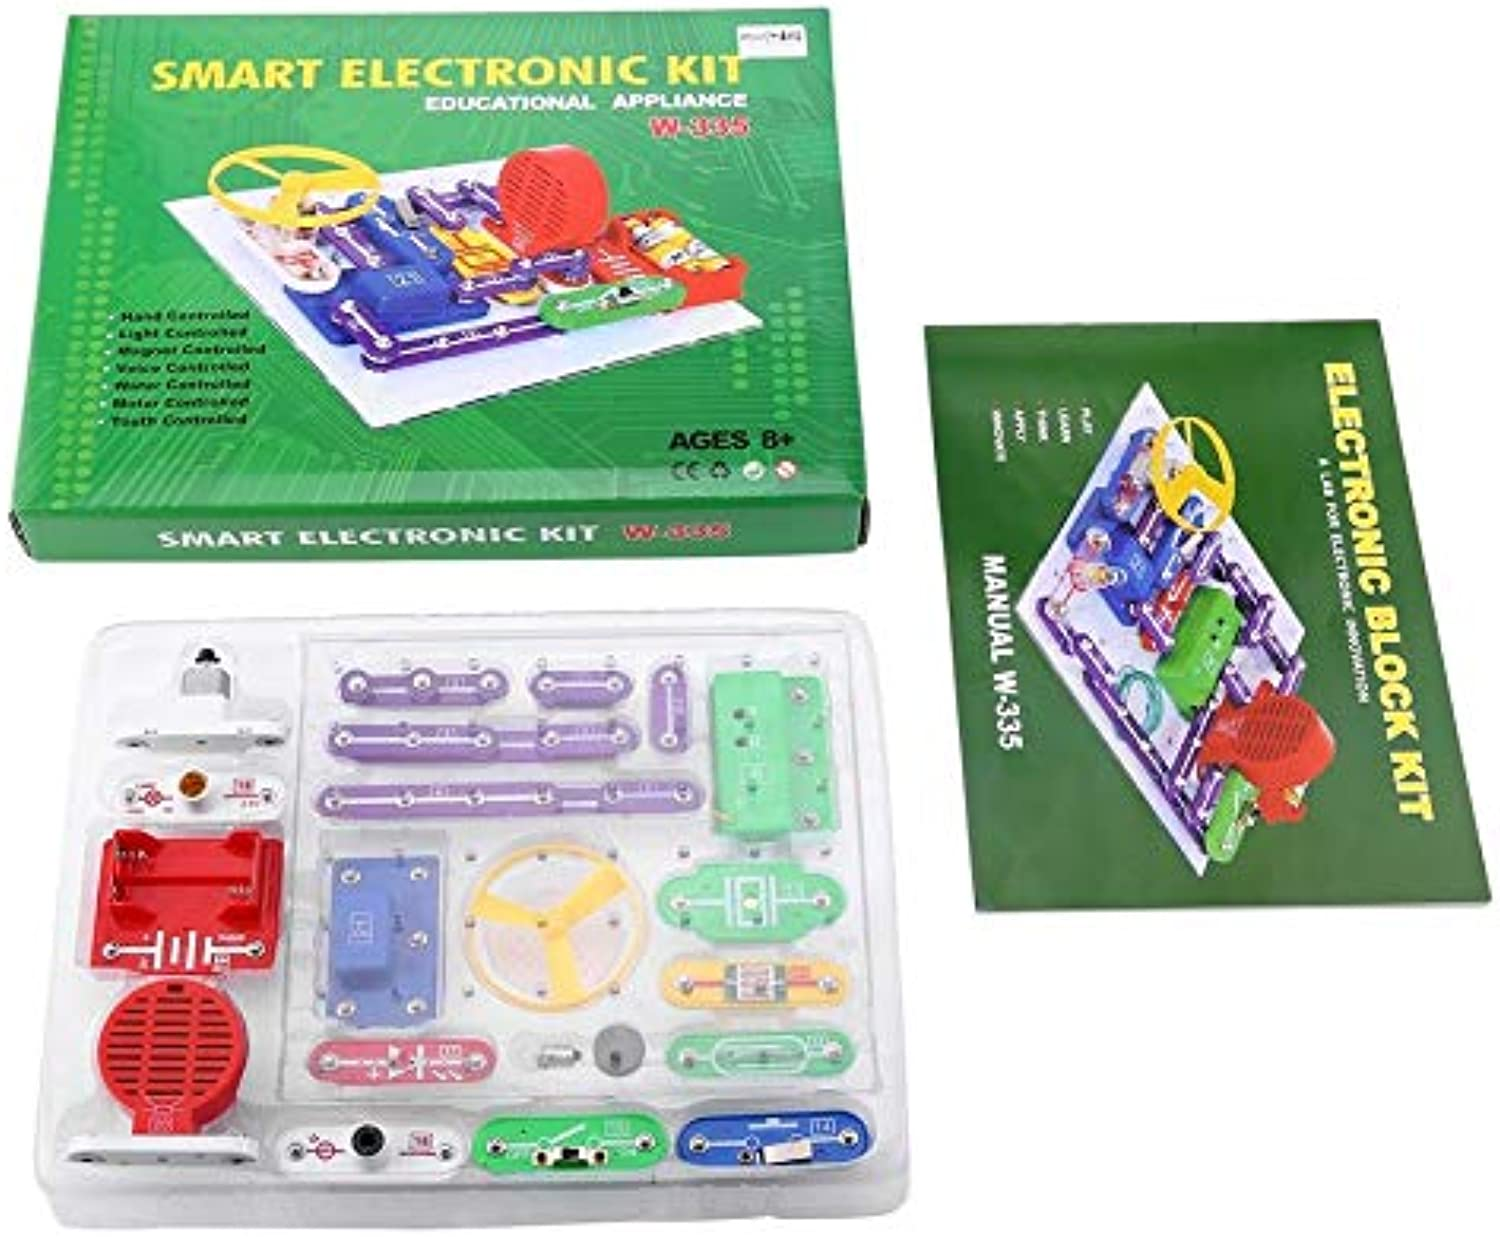 Cheekbone Electronics Toy,DIY Circuits kit for Kids,Educational Science Kit Toy 335